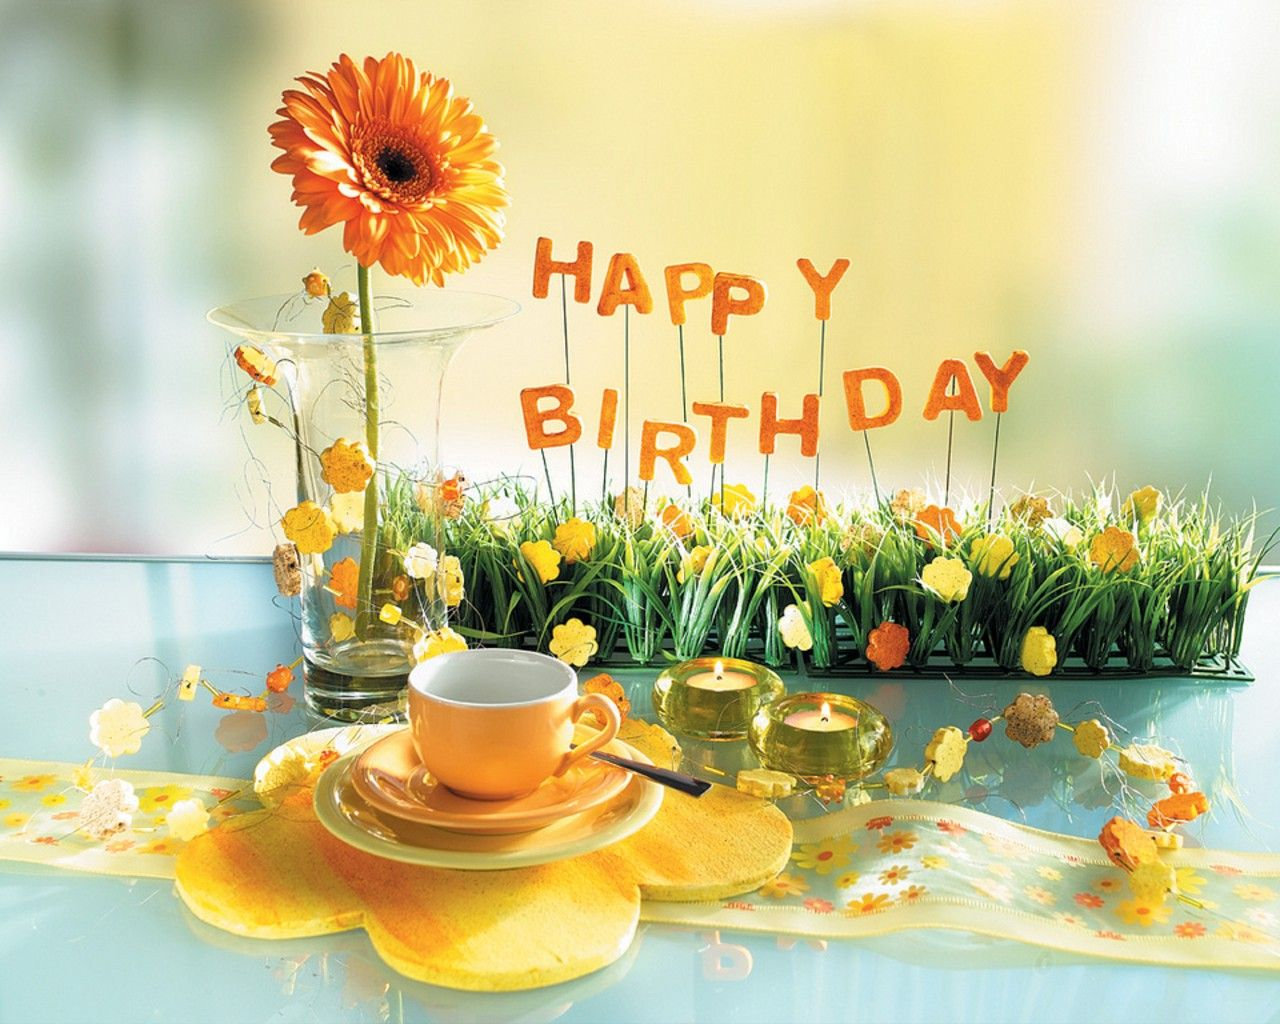 Happy birthday greetings happy birthday wishes lifes happy birthday greetings happy birthday wishes dhlflorist Image collections